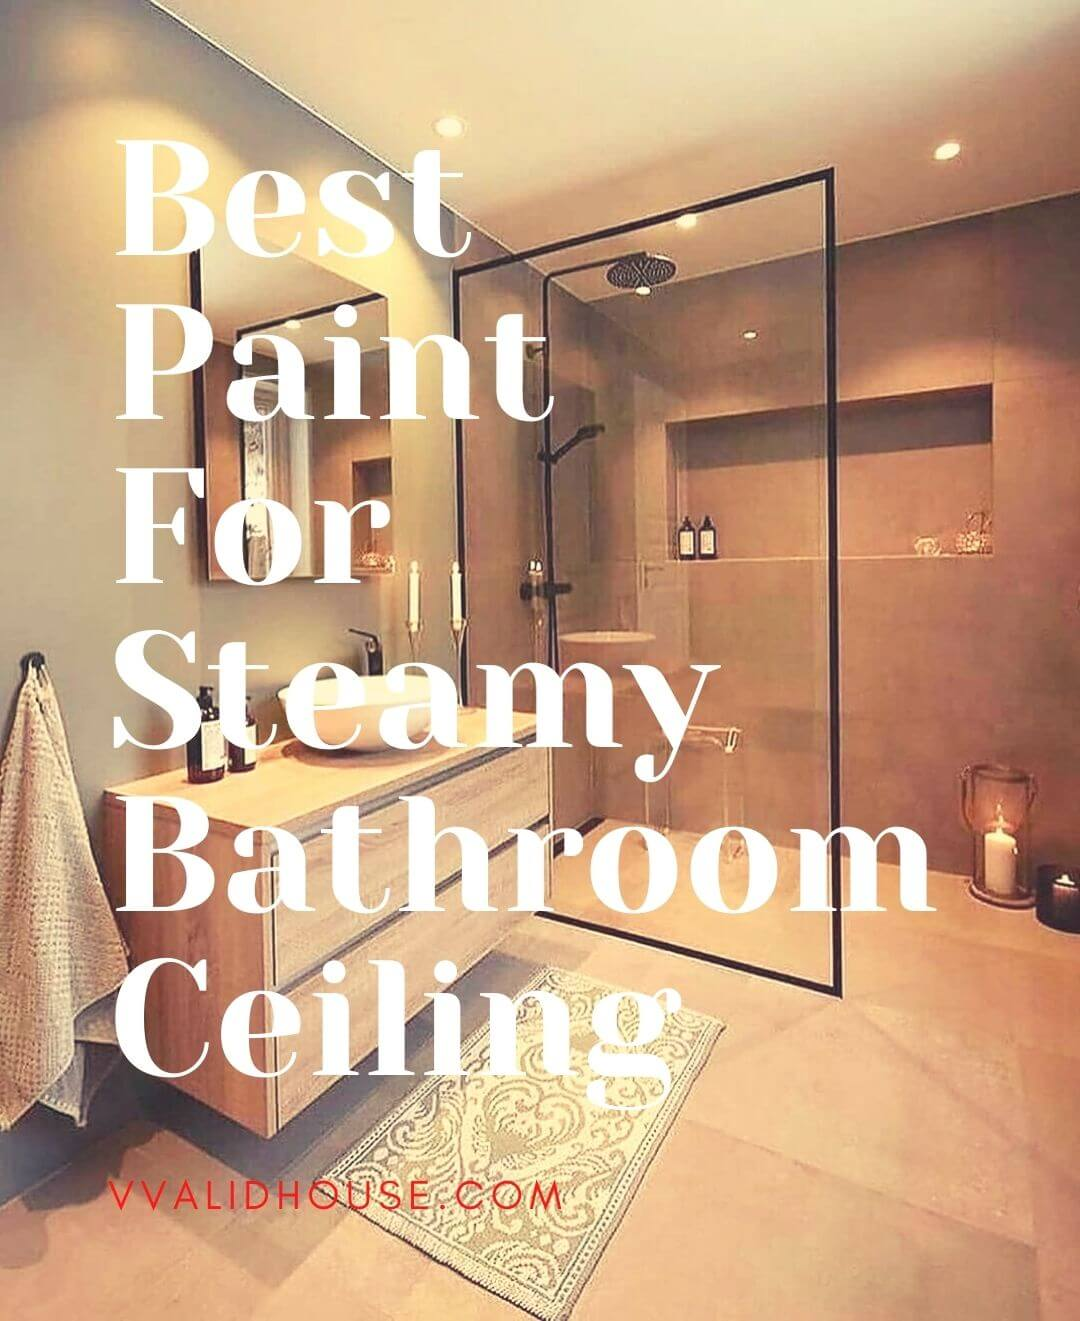 Best Paint For Steamy Bathroom Ceiling